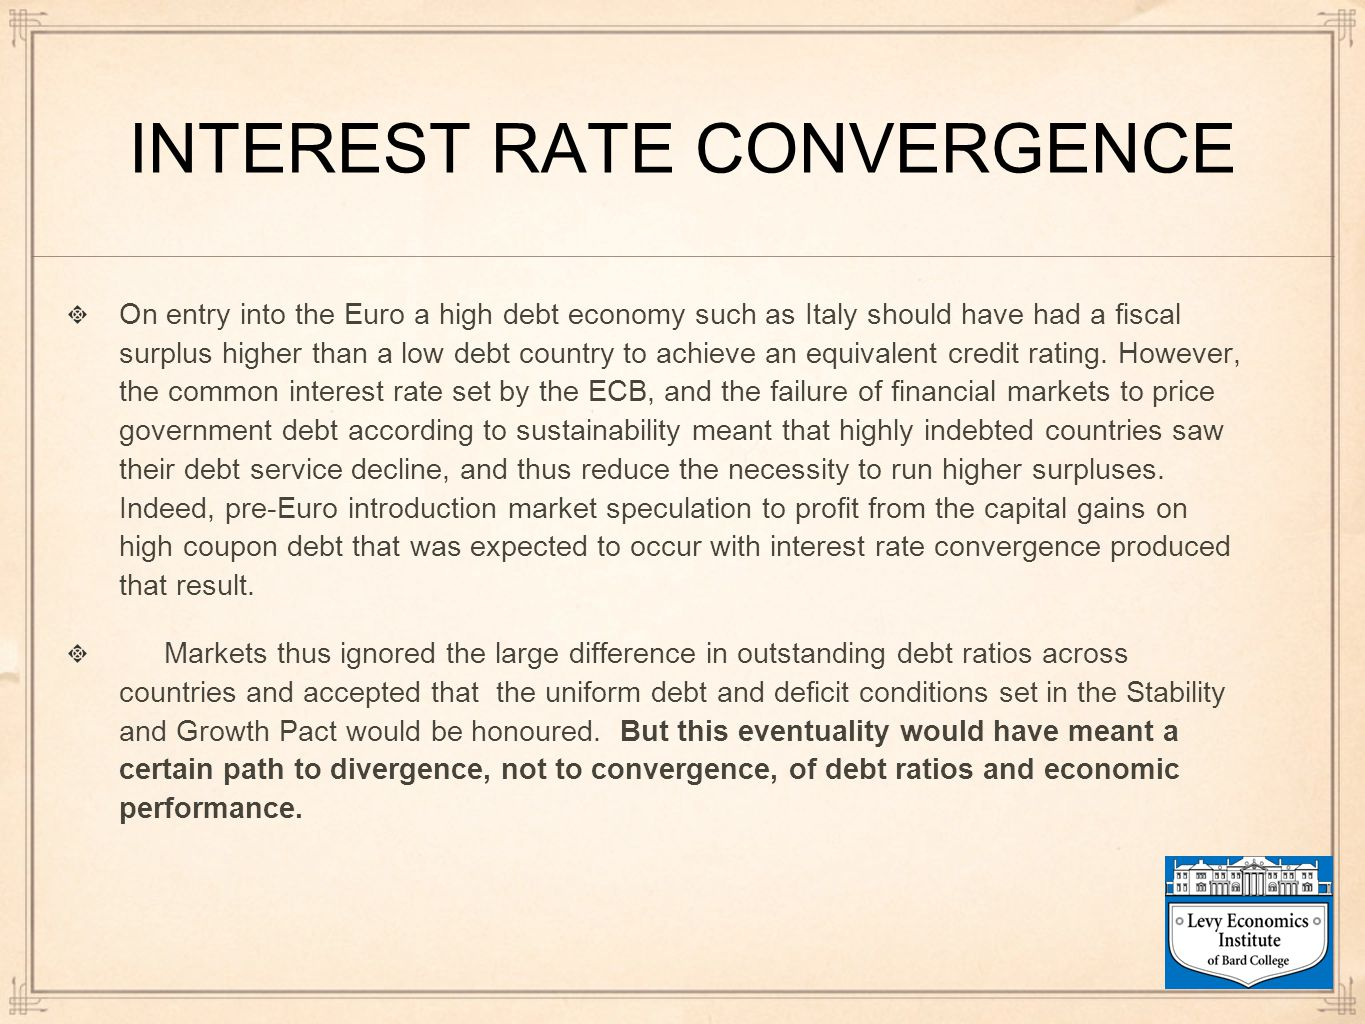 INTEREST RATE CONVERGENCE